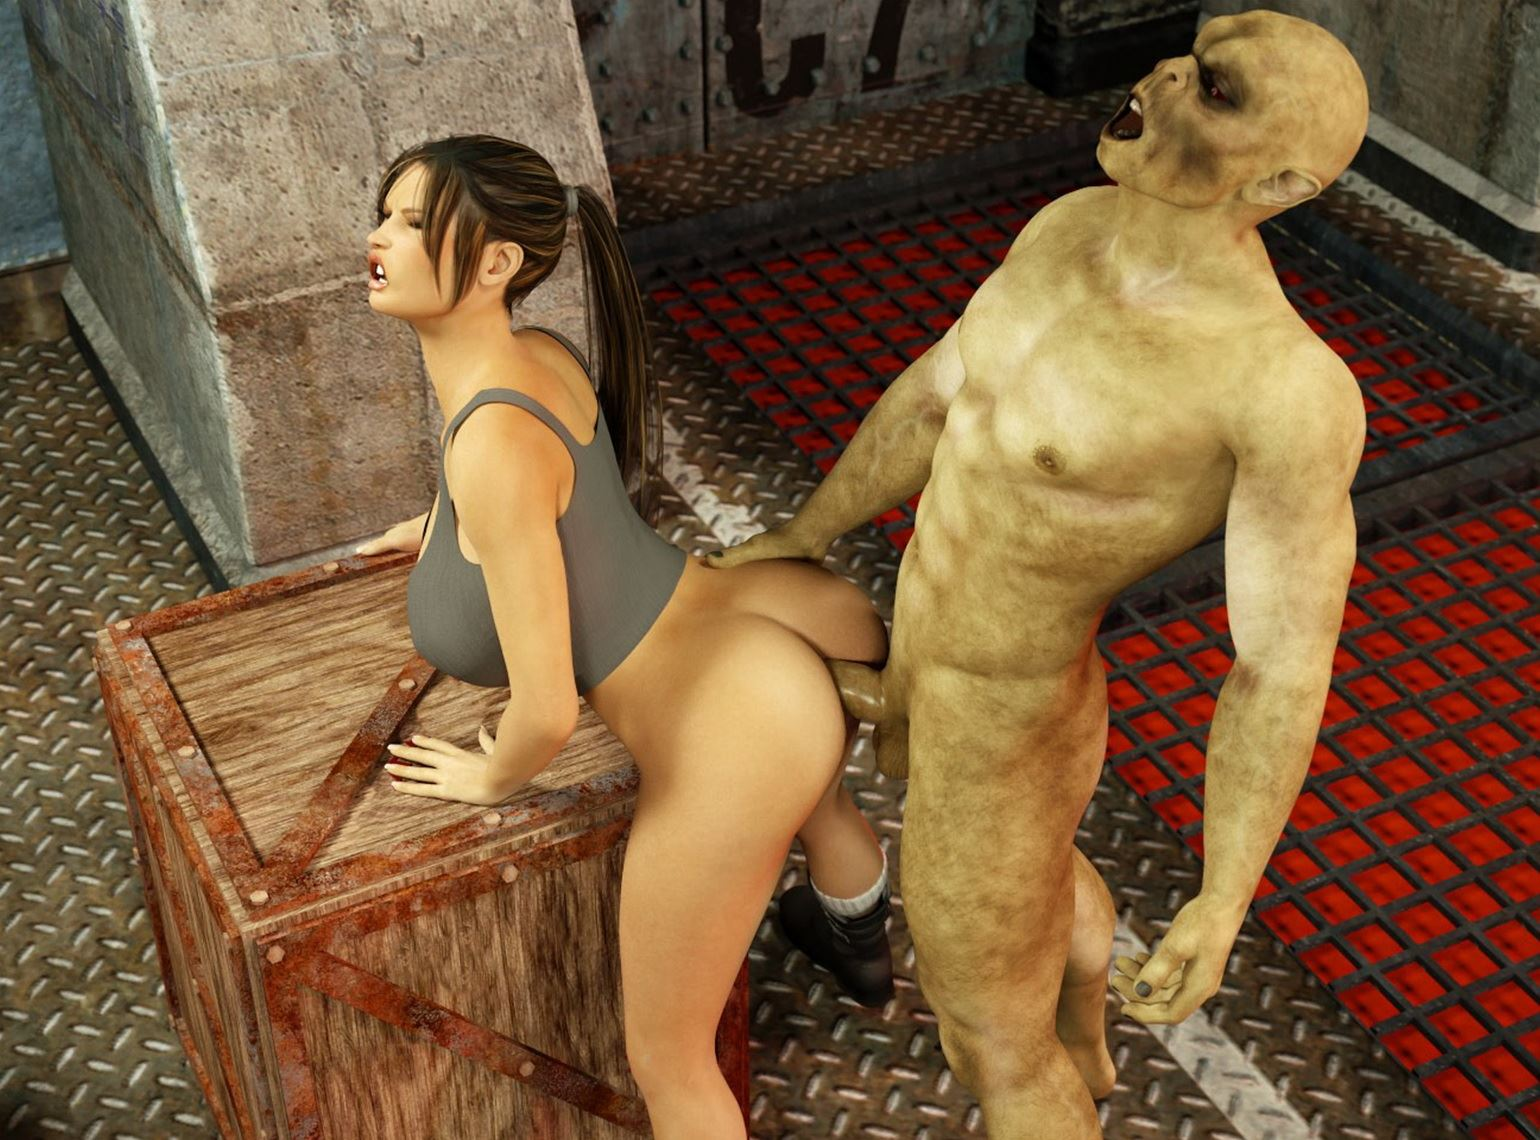 Monster sex lara croft sexy thumbs